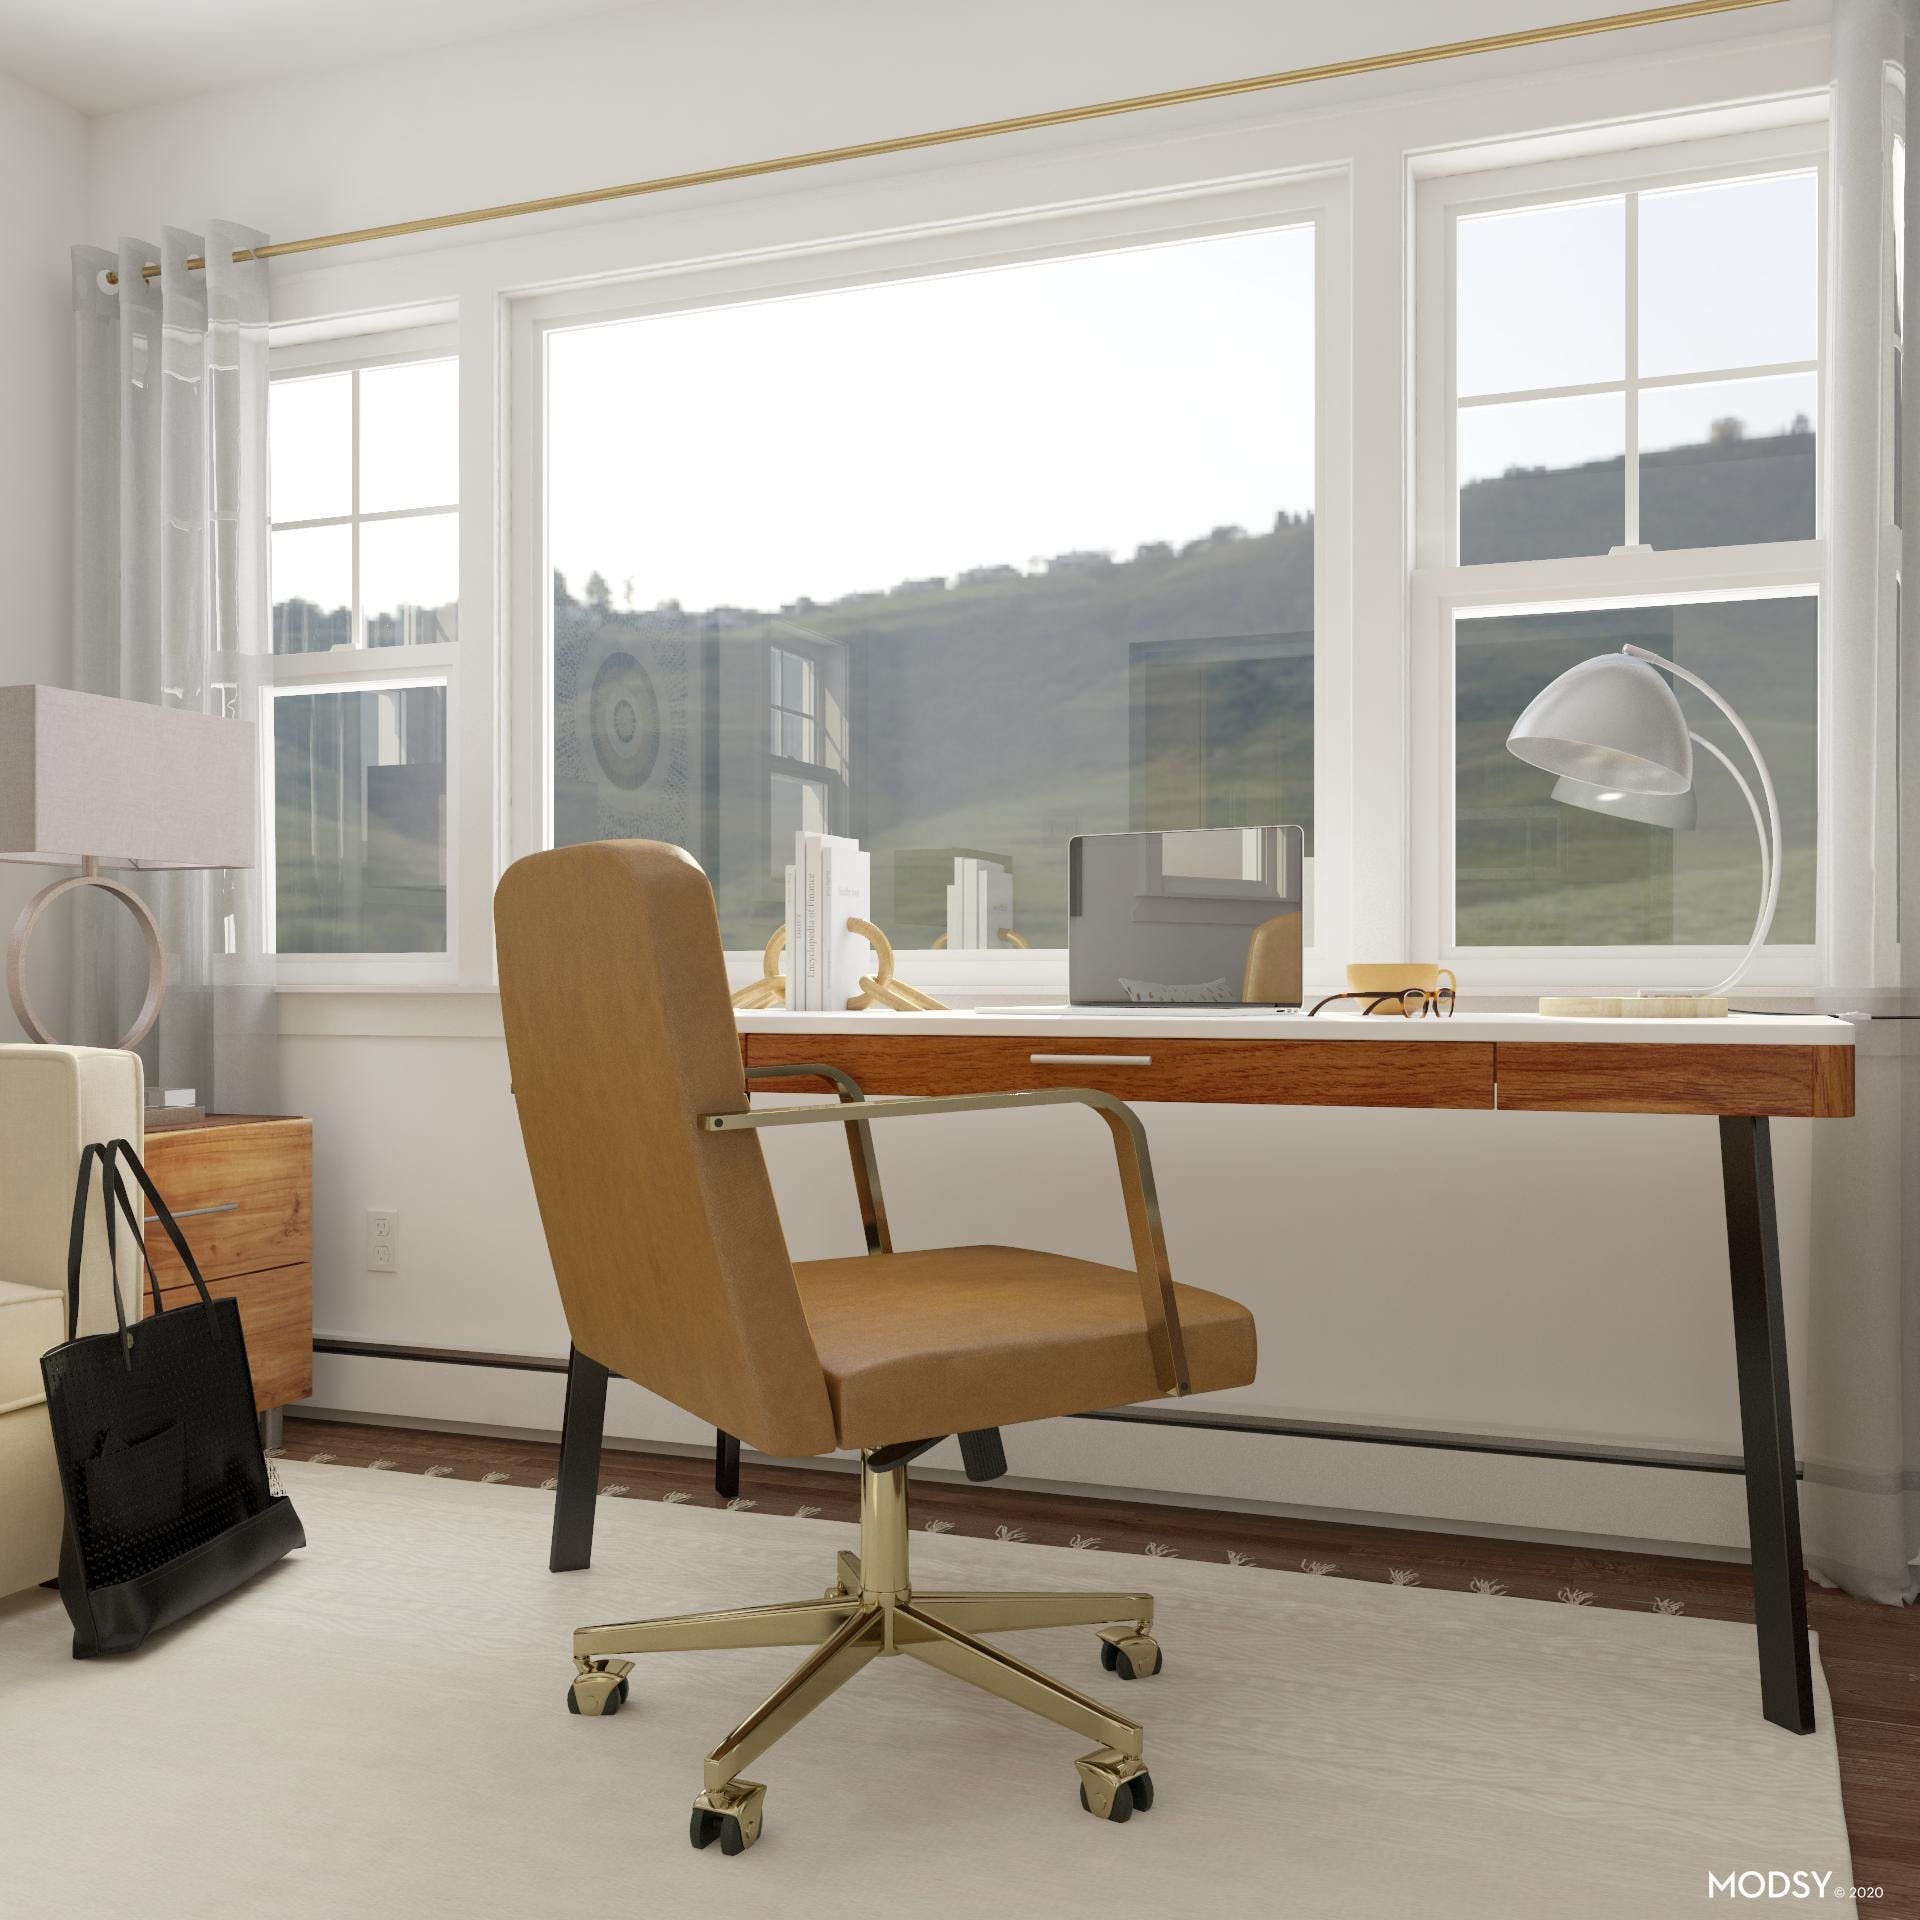 Workspace With A View: Modern Office